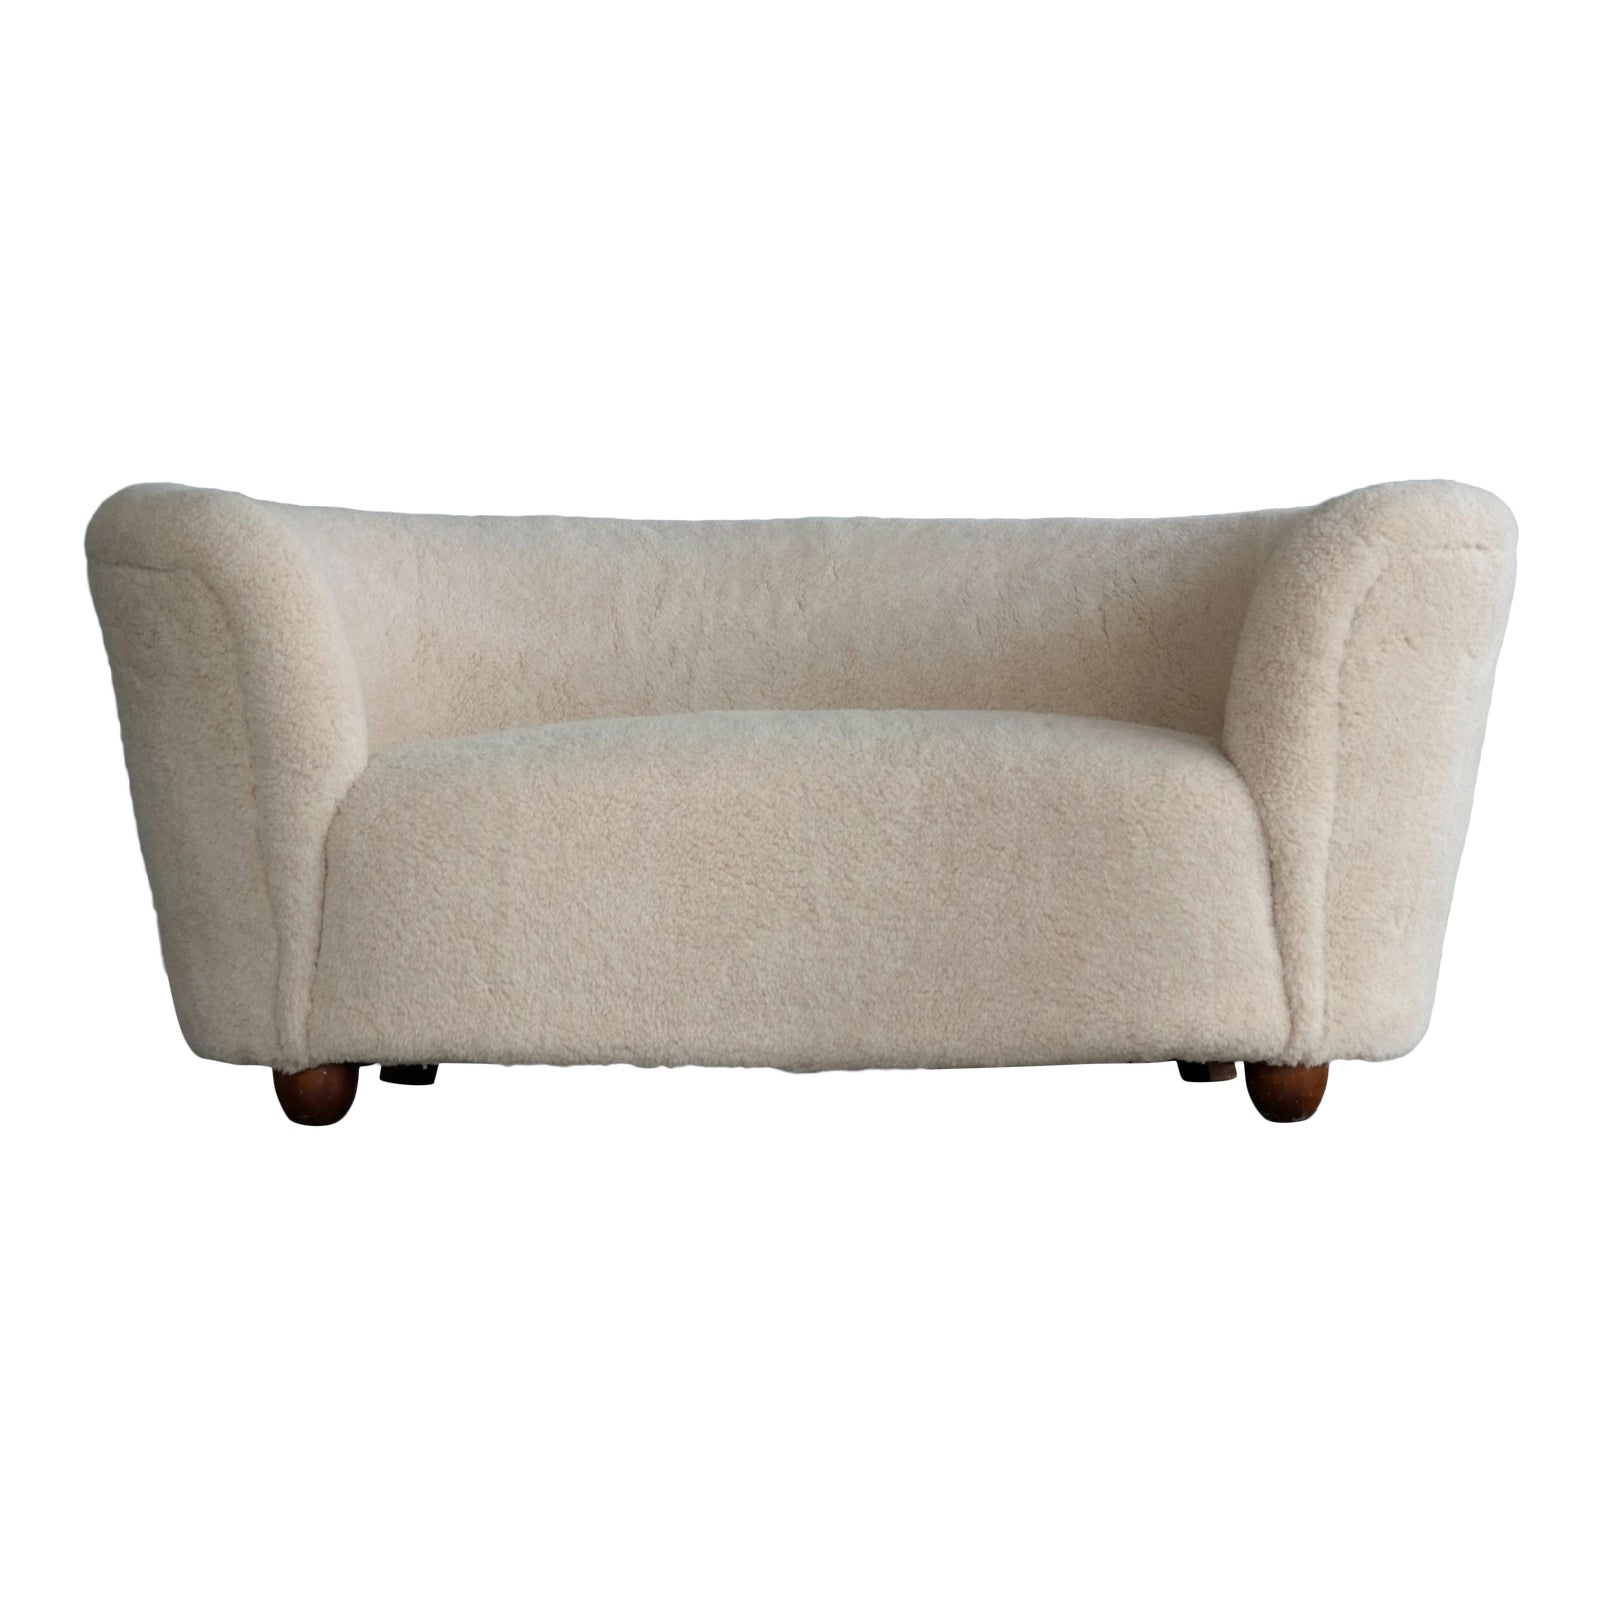 tufted sofa victorian nailhead linen replica w and cream recamier loveseats pin horchow loveseat curved sofas